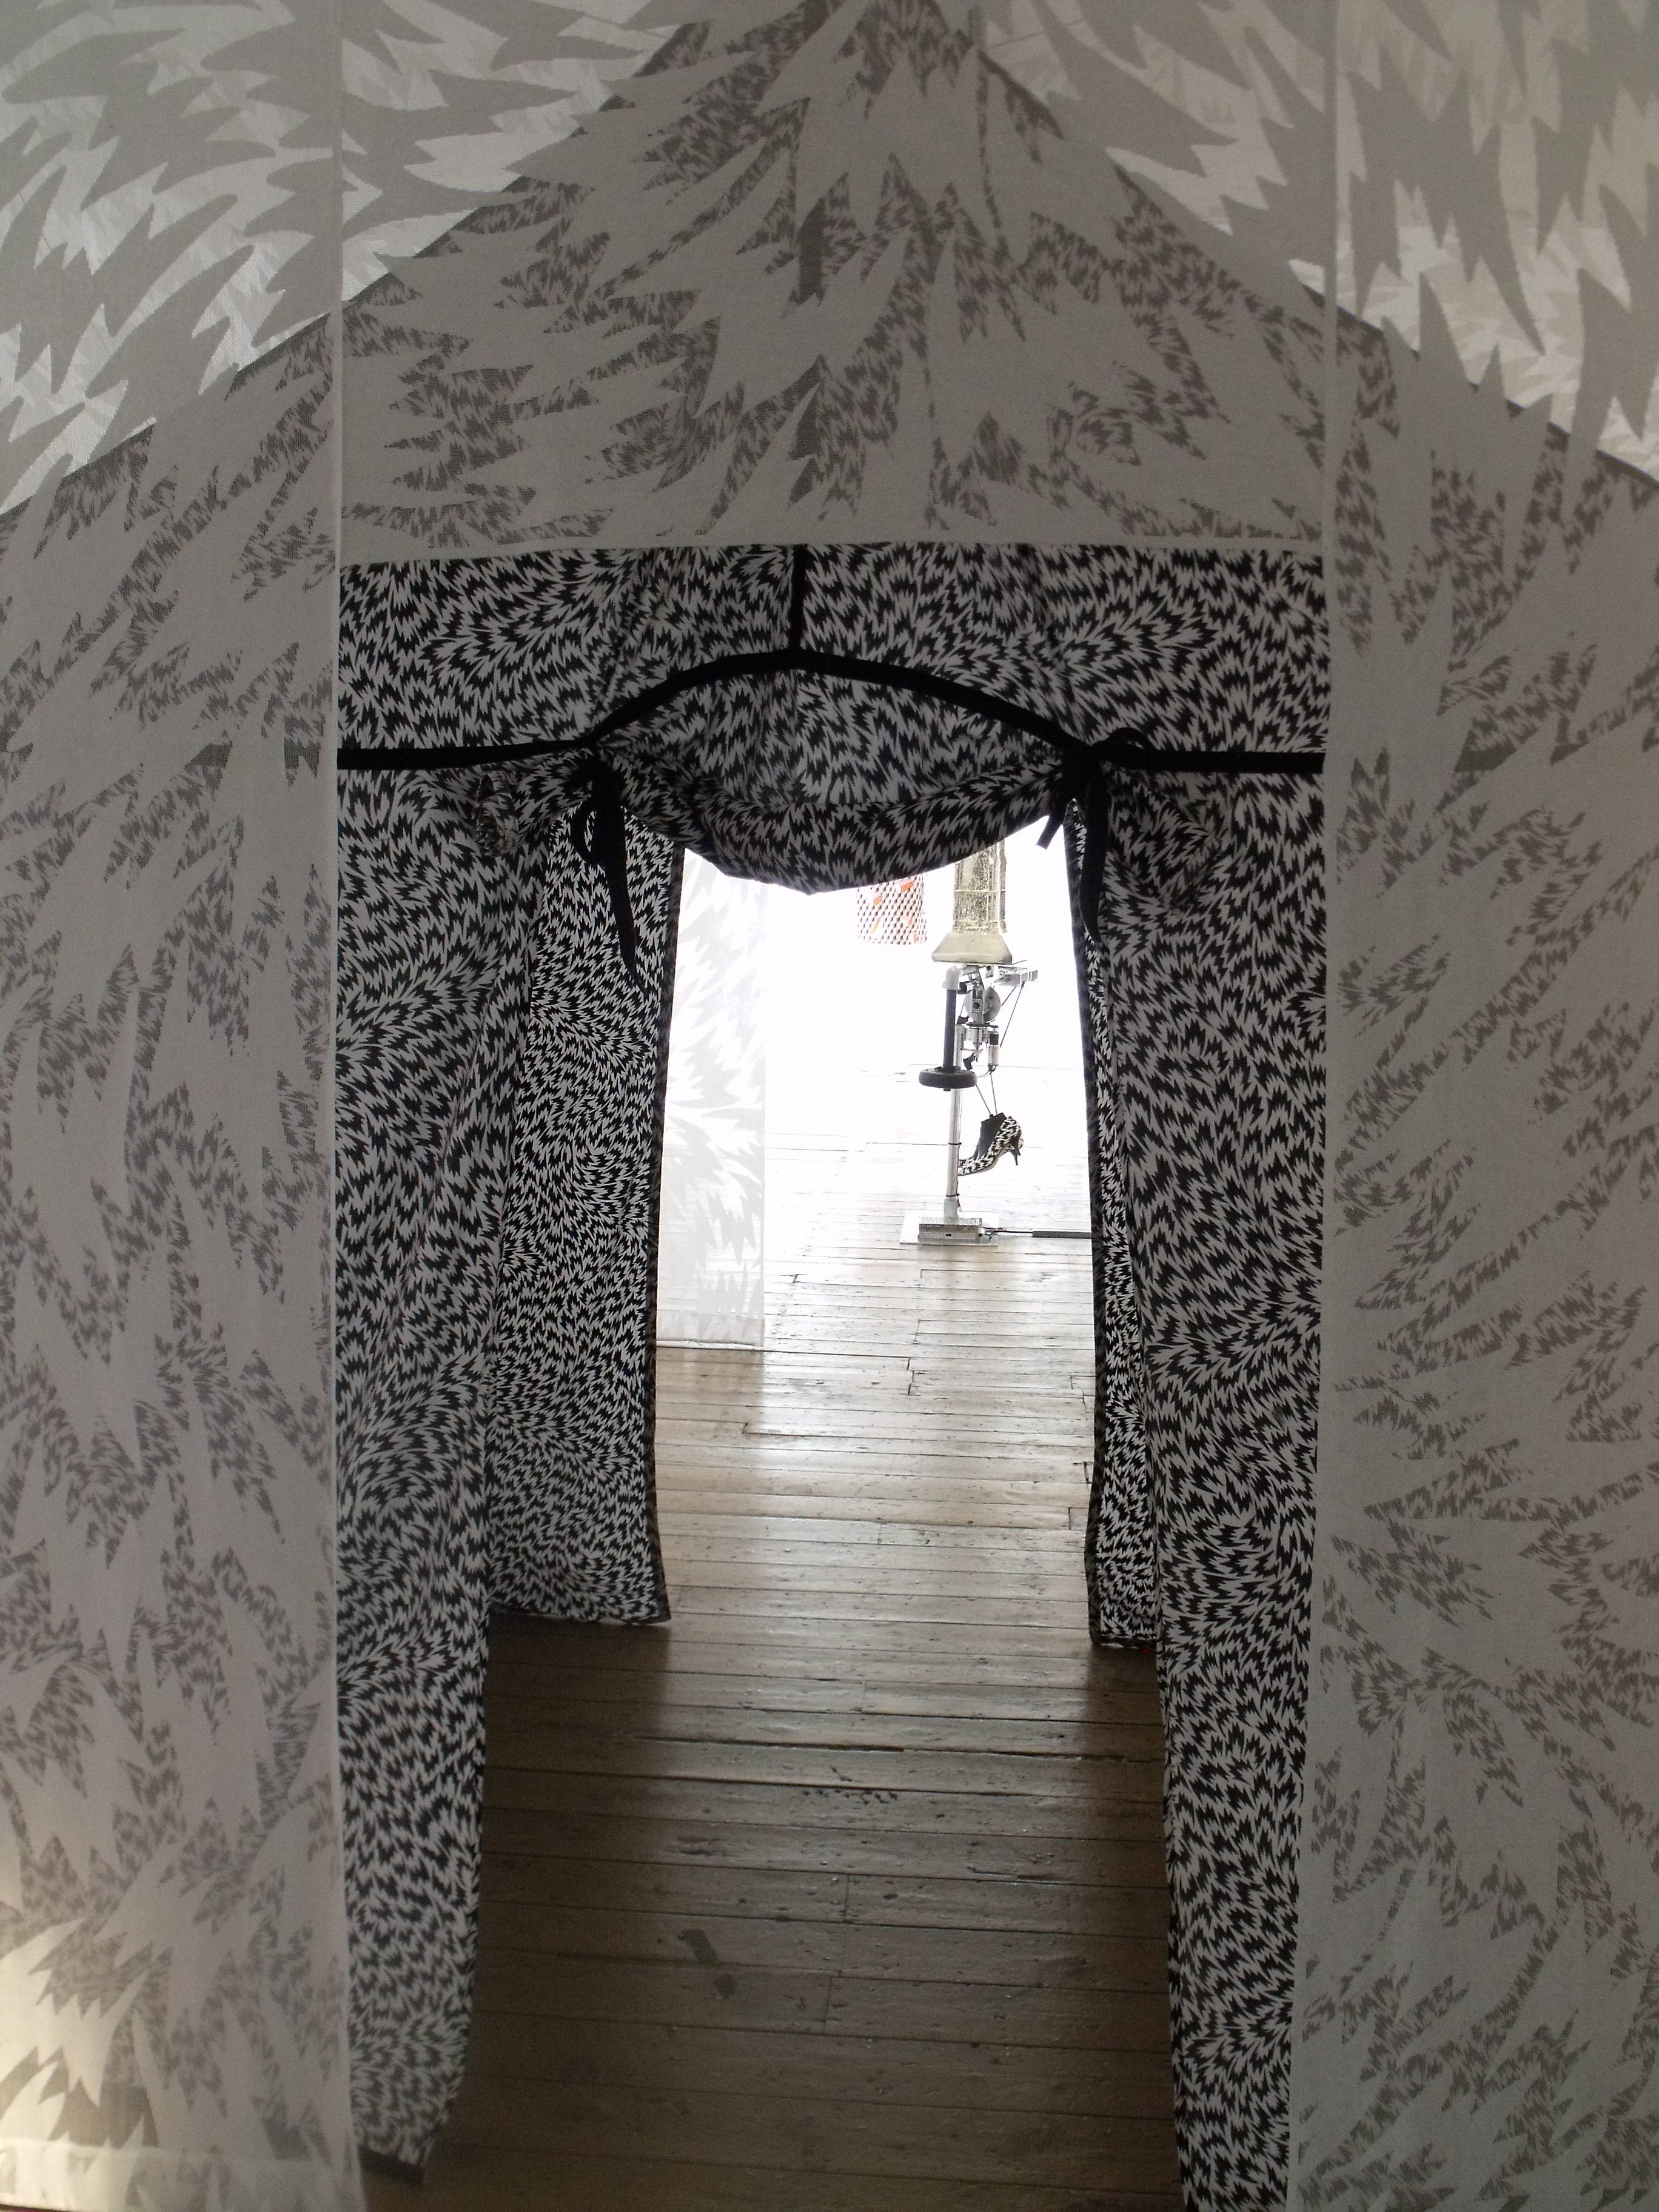 The beginning of the exhibition - a series of doorways through a monochrome patterned tent-like structure. photo: Ruth Clifford